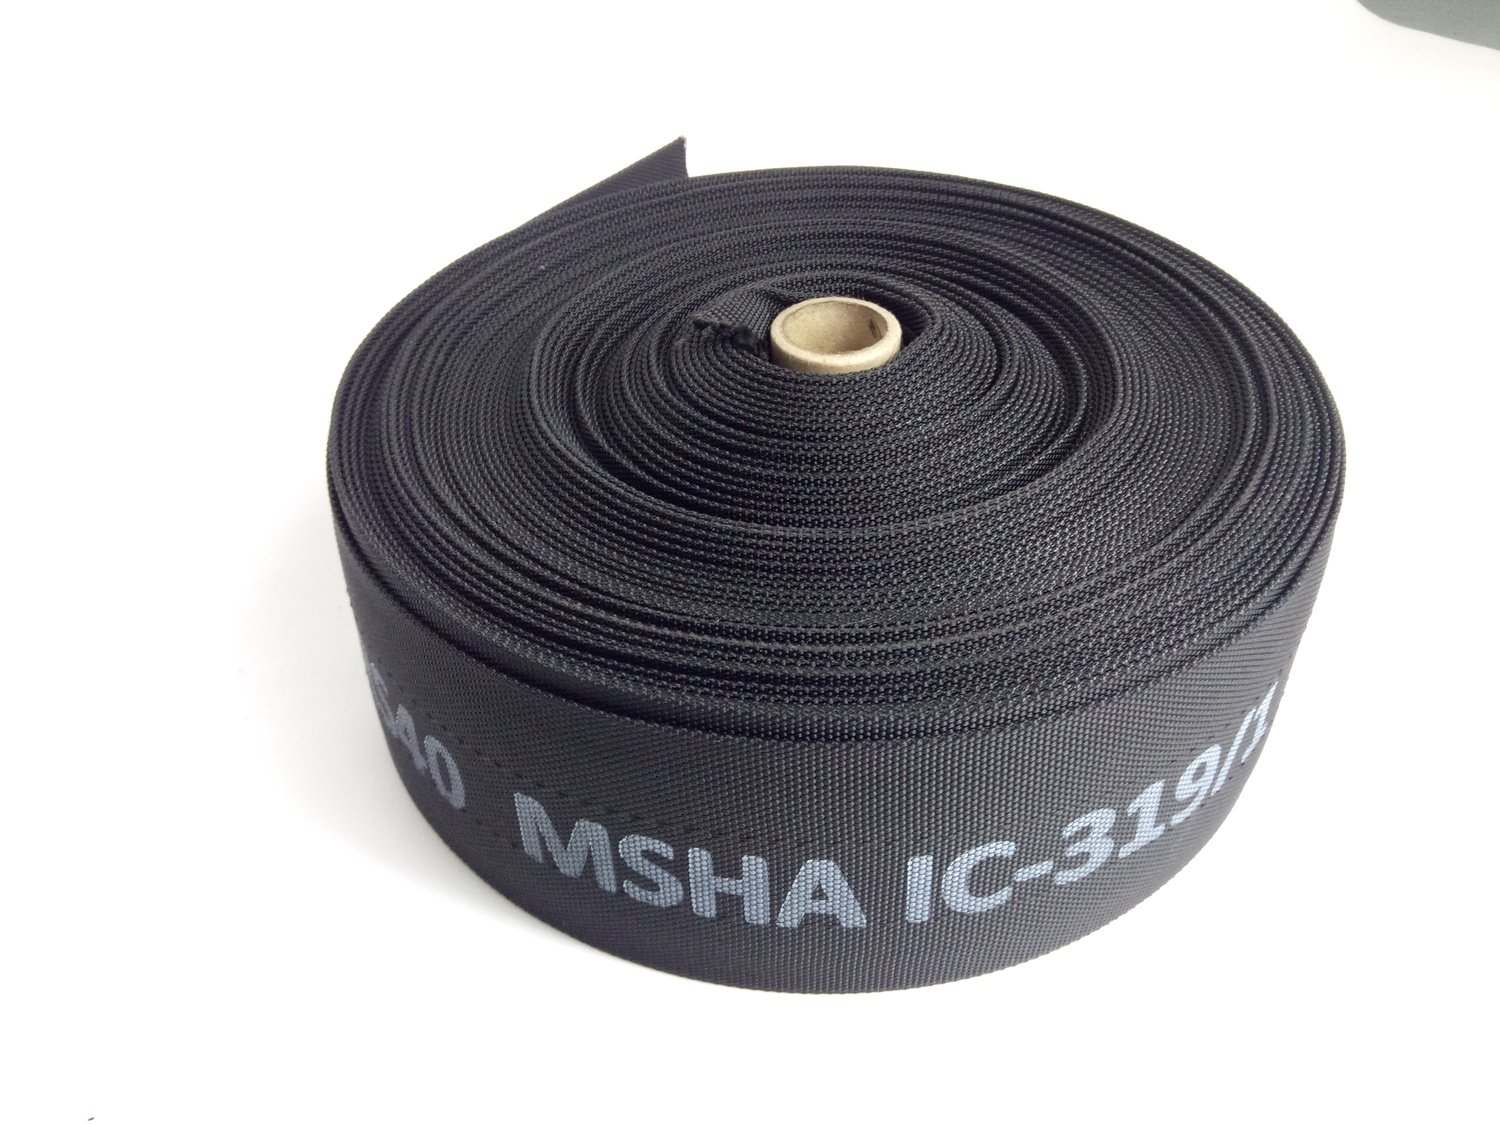 Hydraulic Hose Burst Sleeve MSHA Various Sizes 50 mt Rolls.